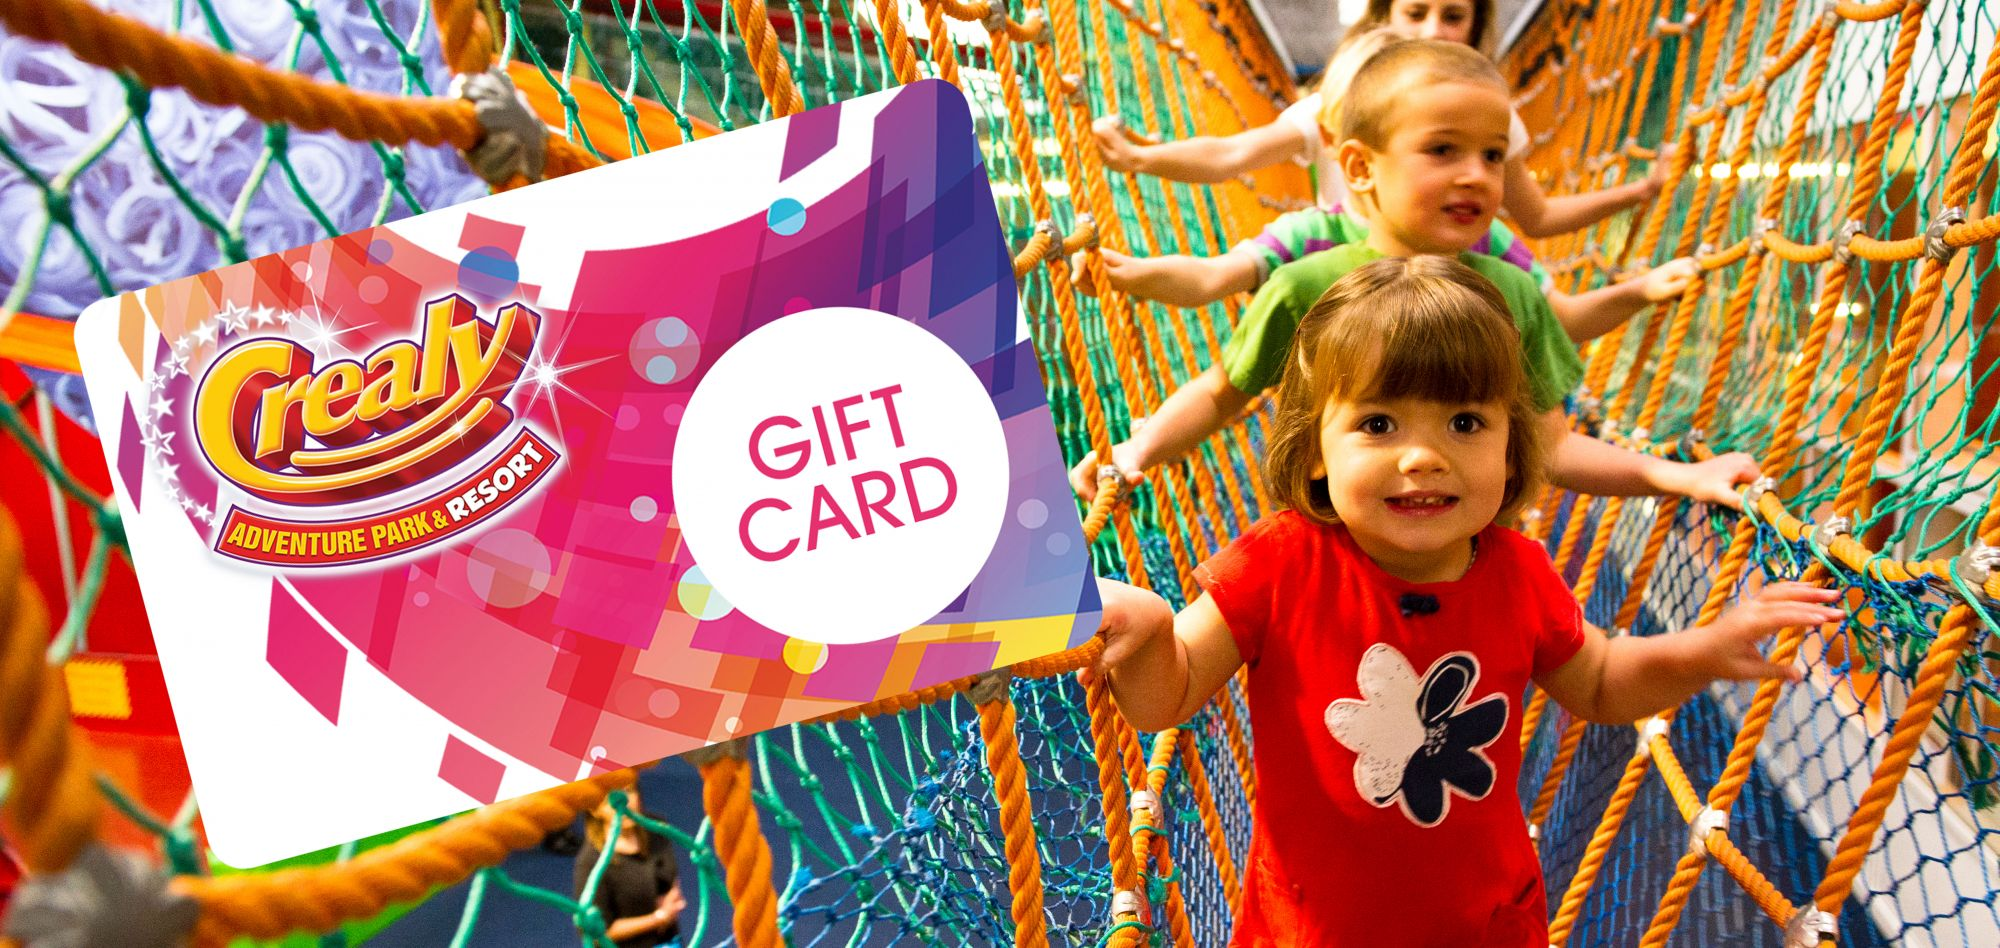 Purchase a Gift Card for friends and family at Crealy Adventure Park & Resort